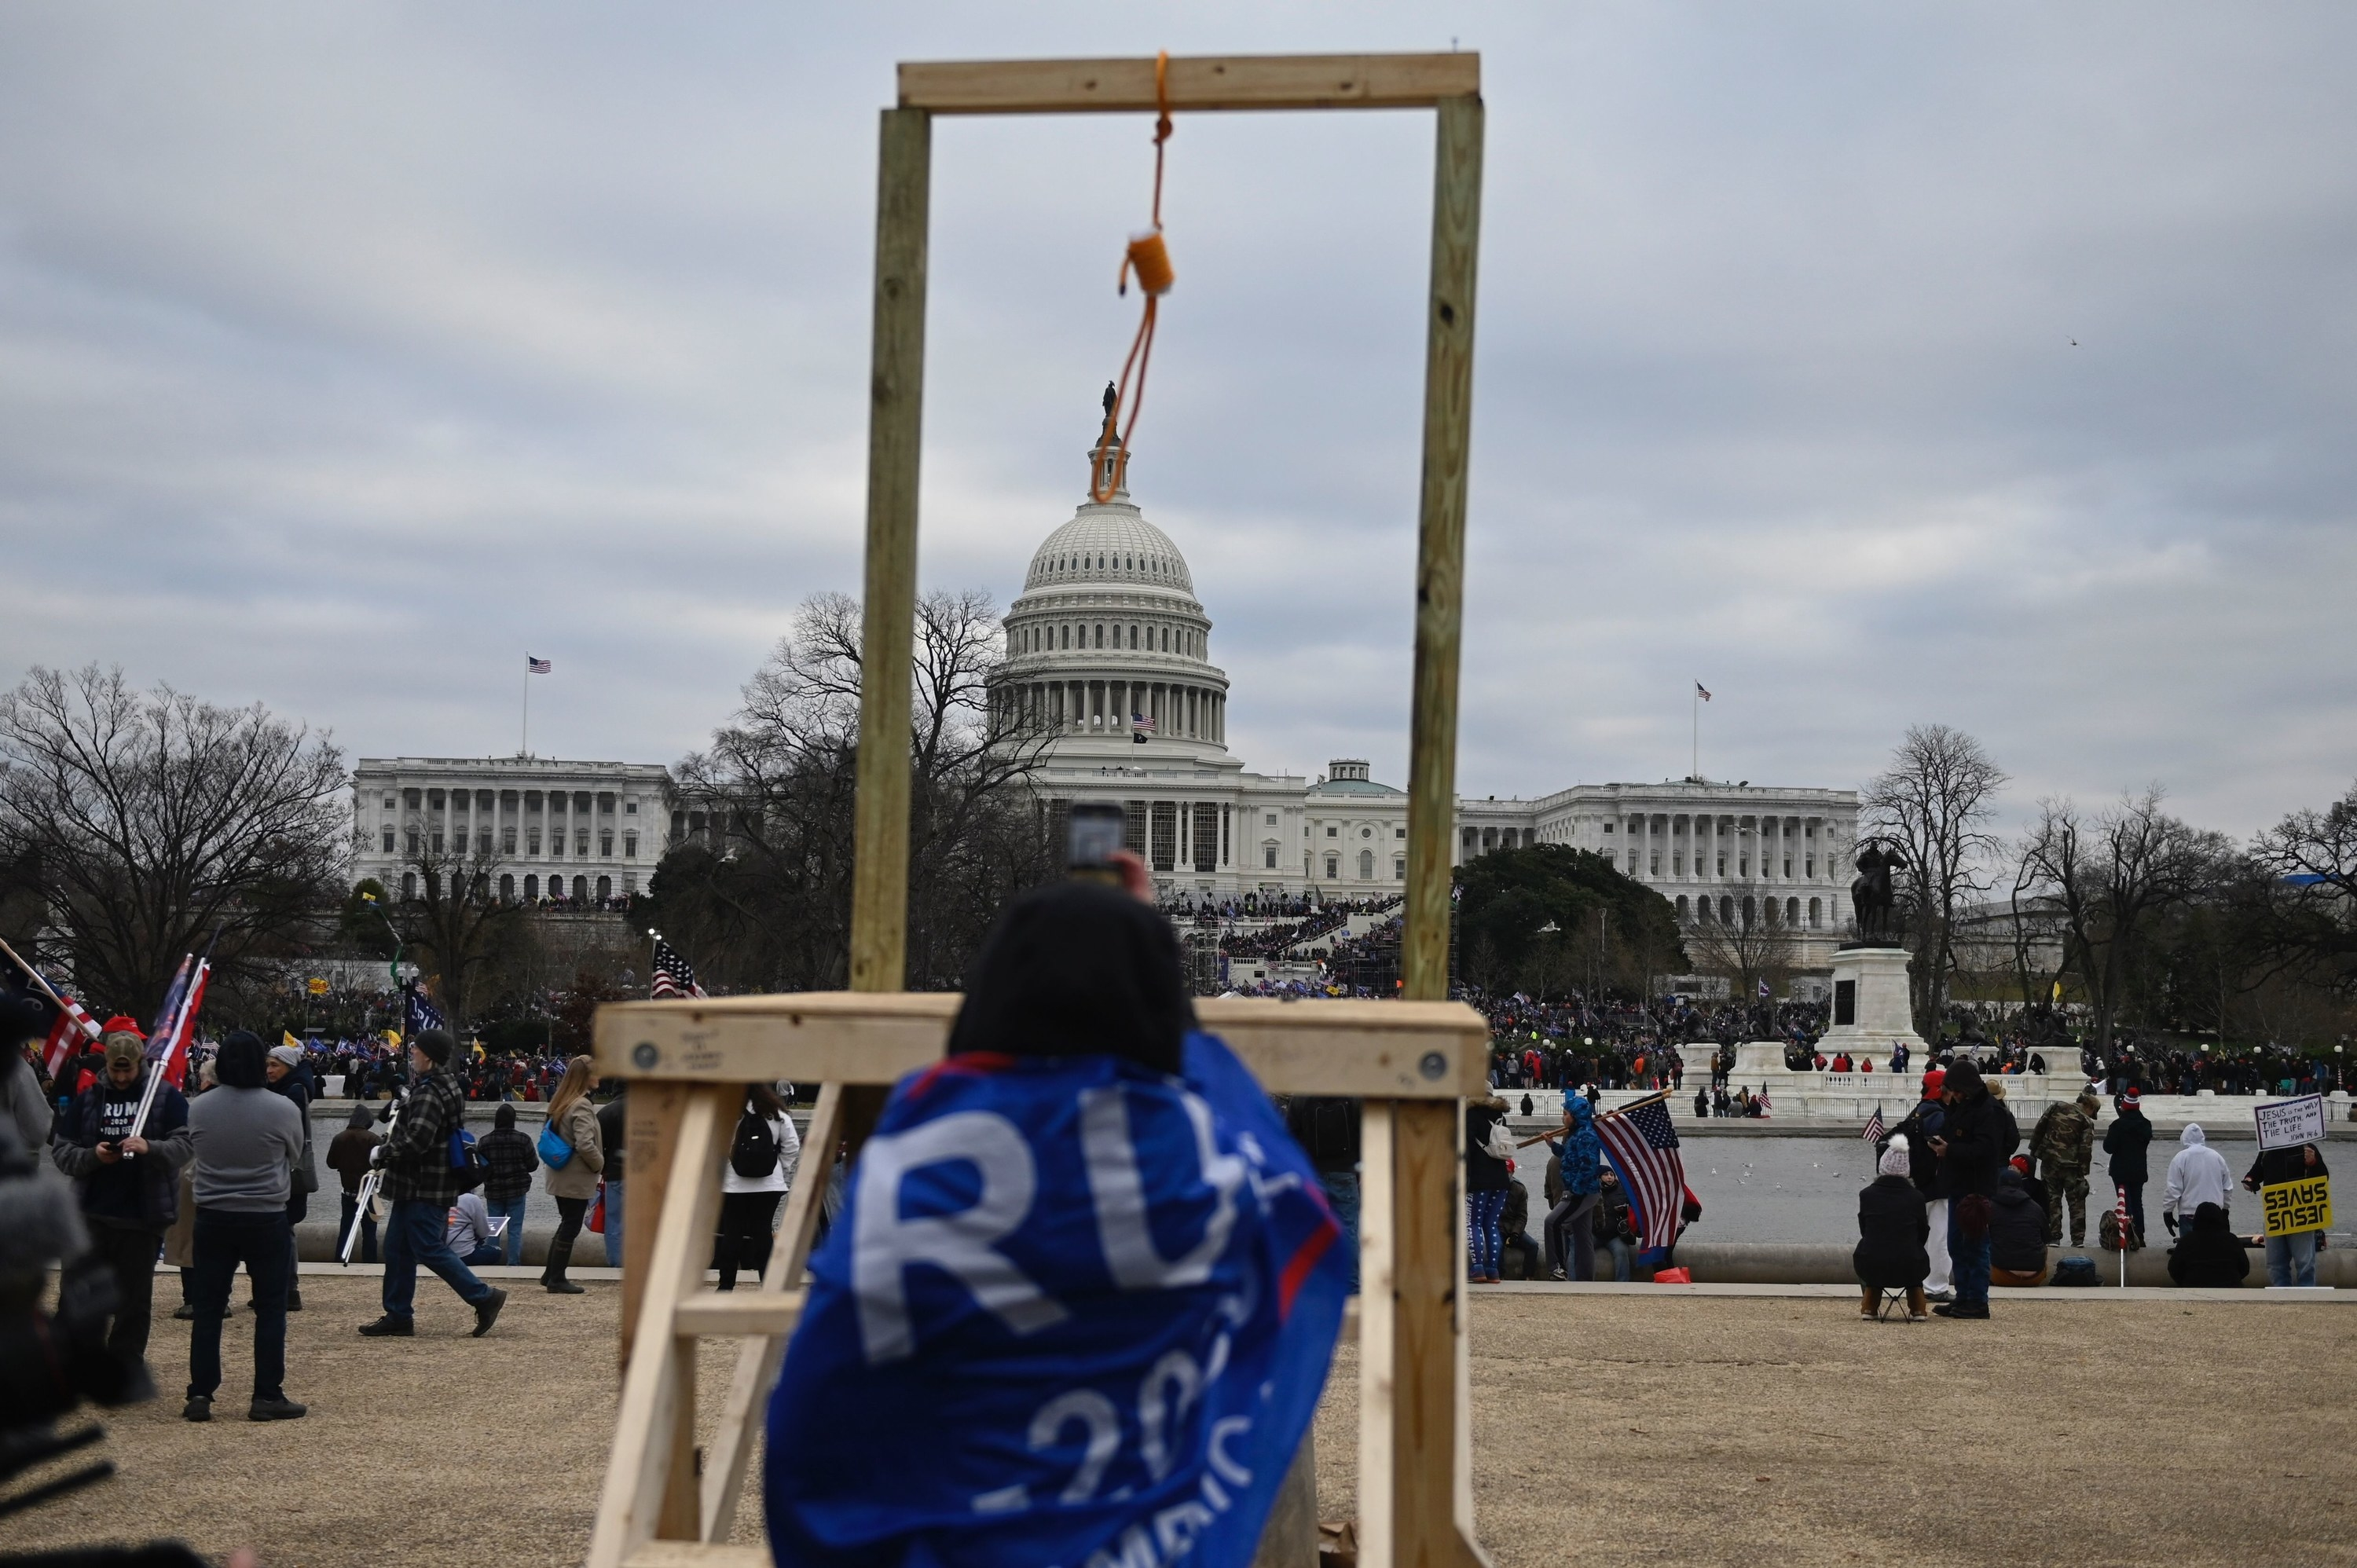 A person draped in a Trump flag stands in front of gallows with a noose that rioters put up in front of the Capitol